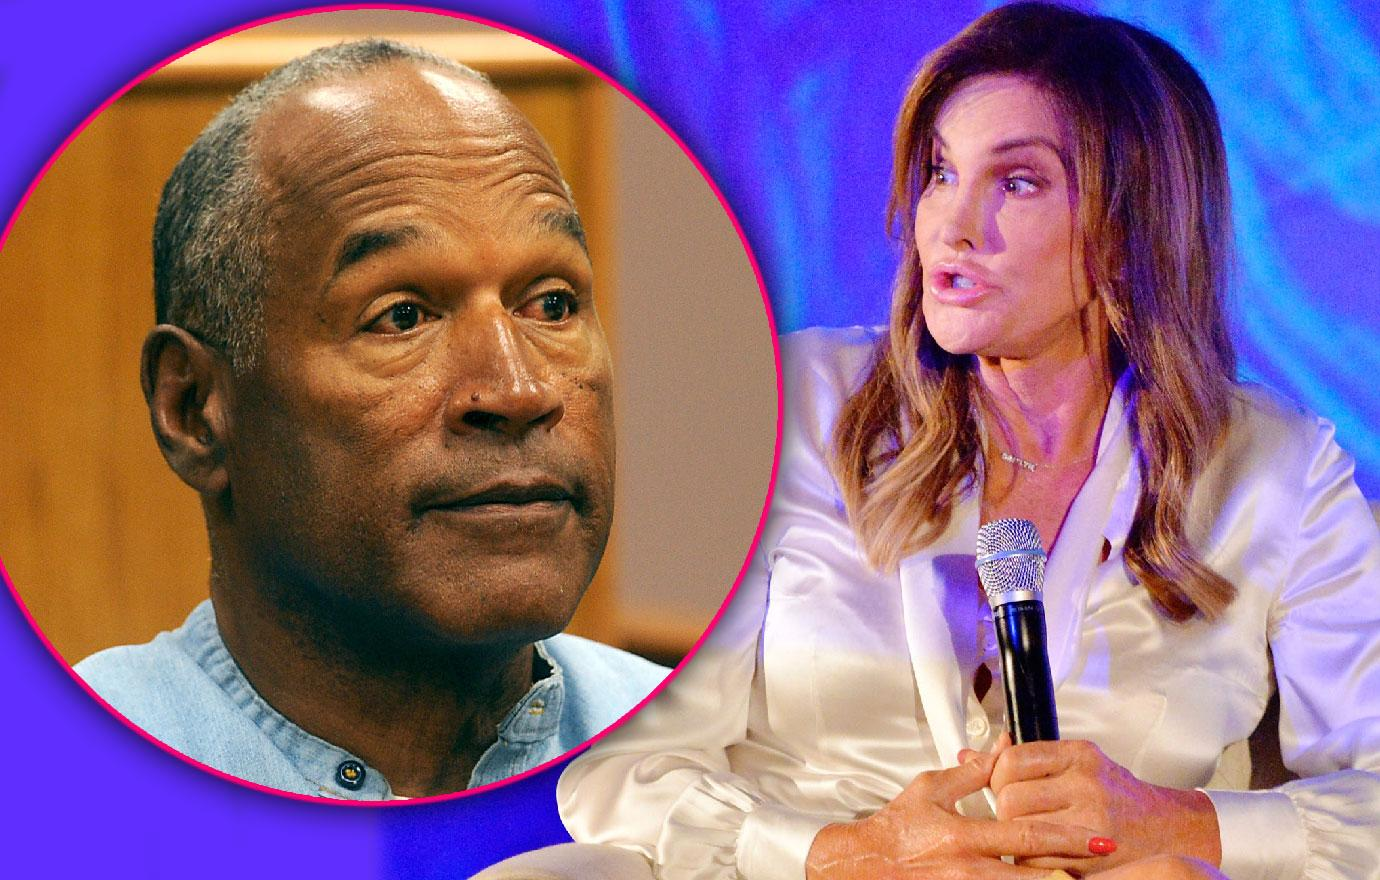 Caitlyn Jenner Demanding Answers From OJ About His Alleged Affair With Kris